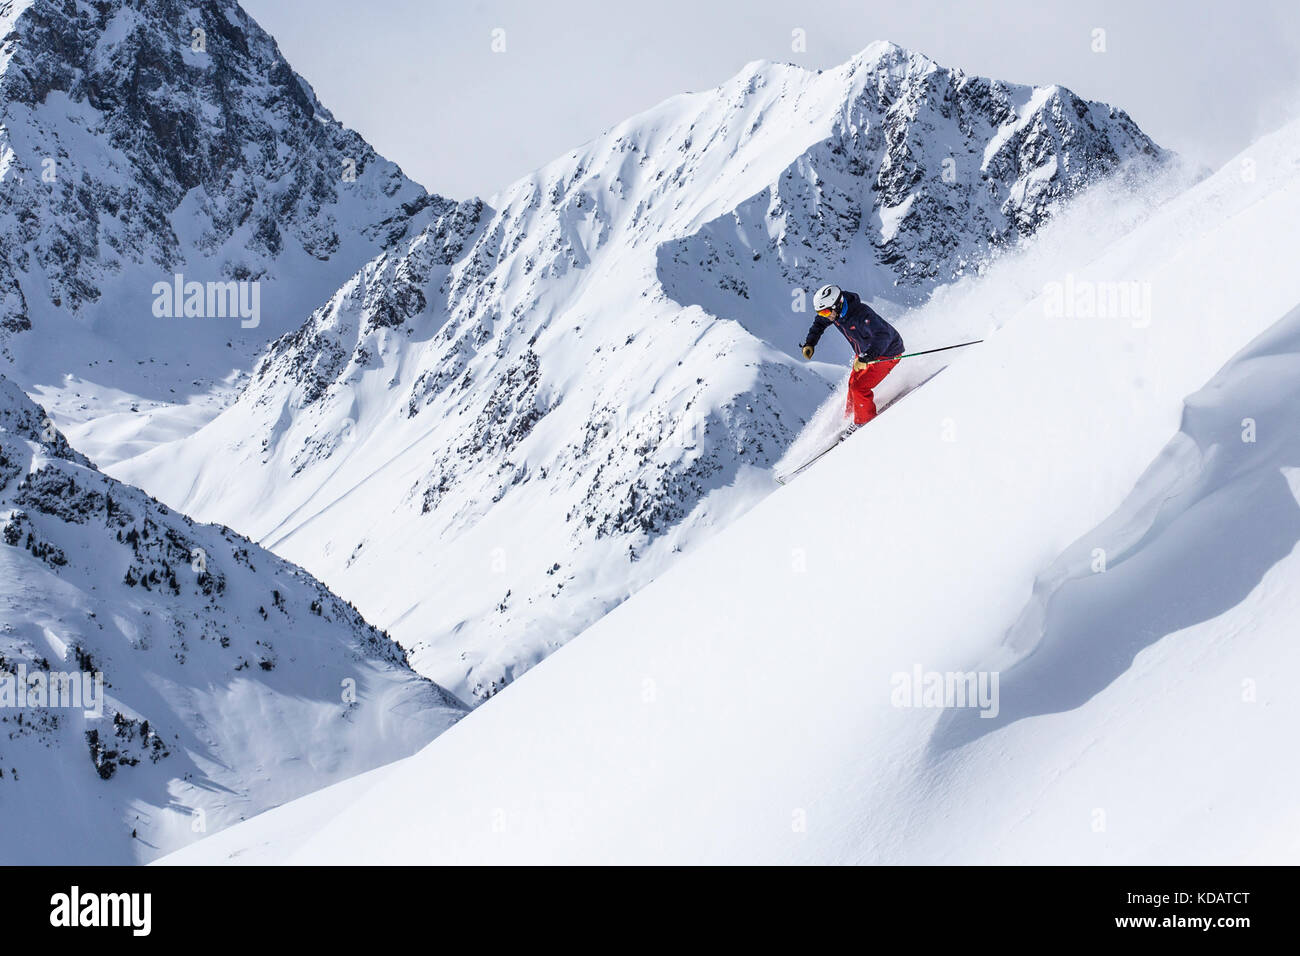 Extreme skier going through steep slope - Stock Image